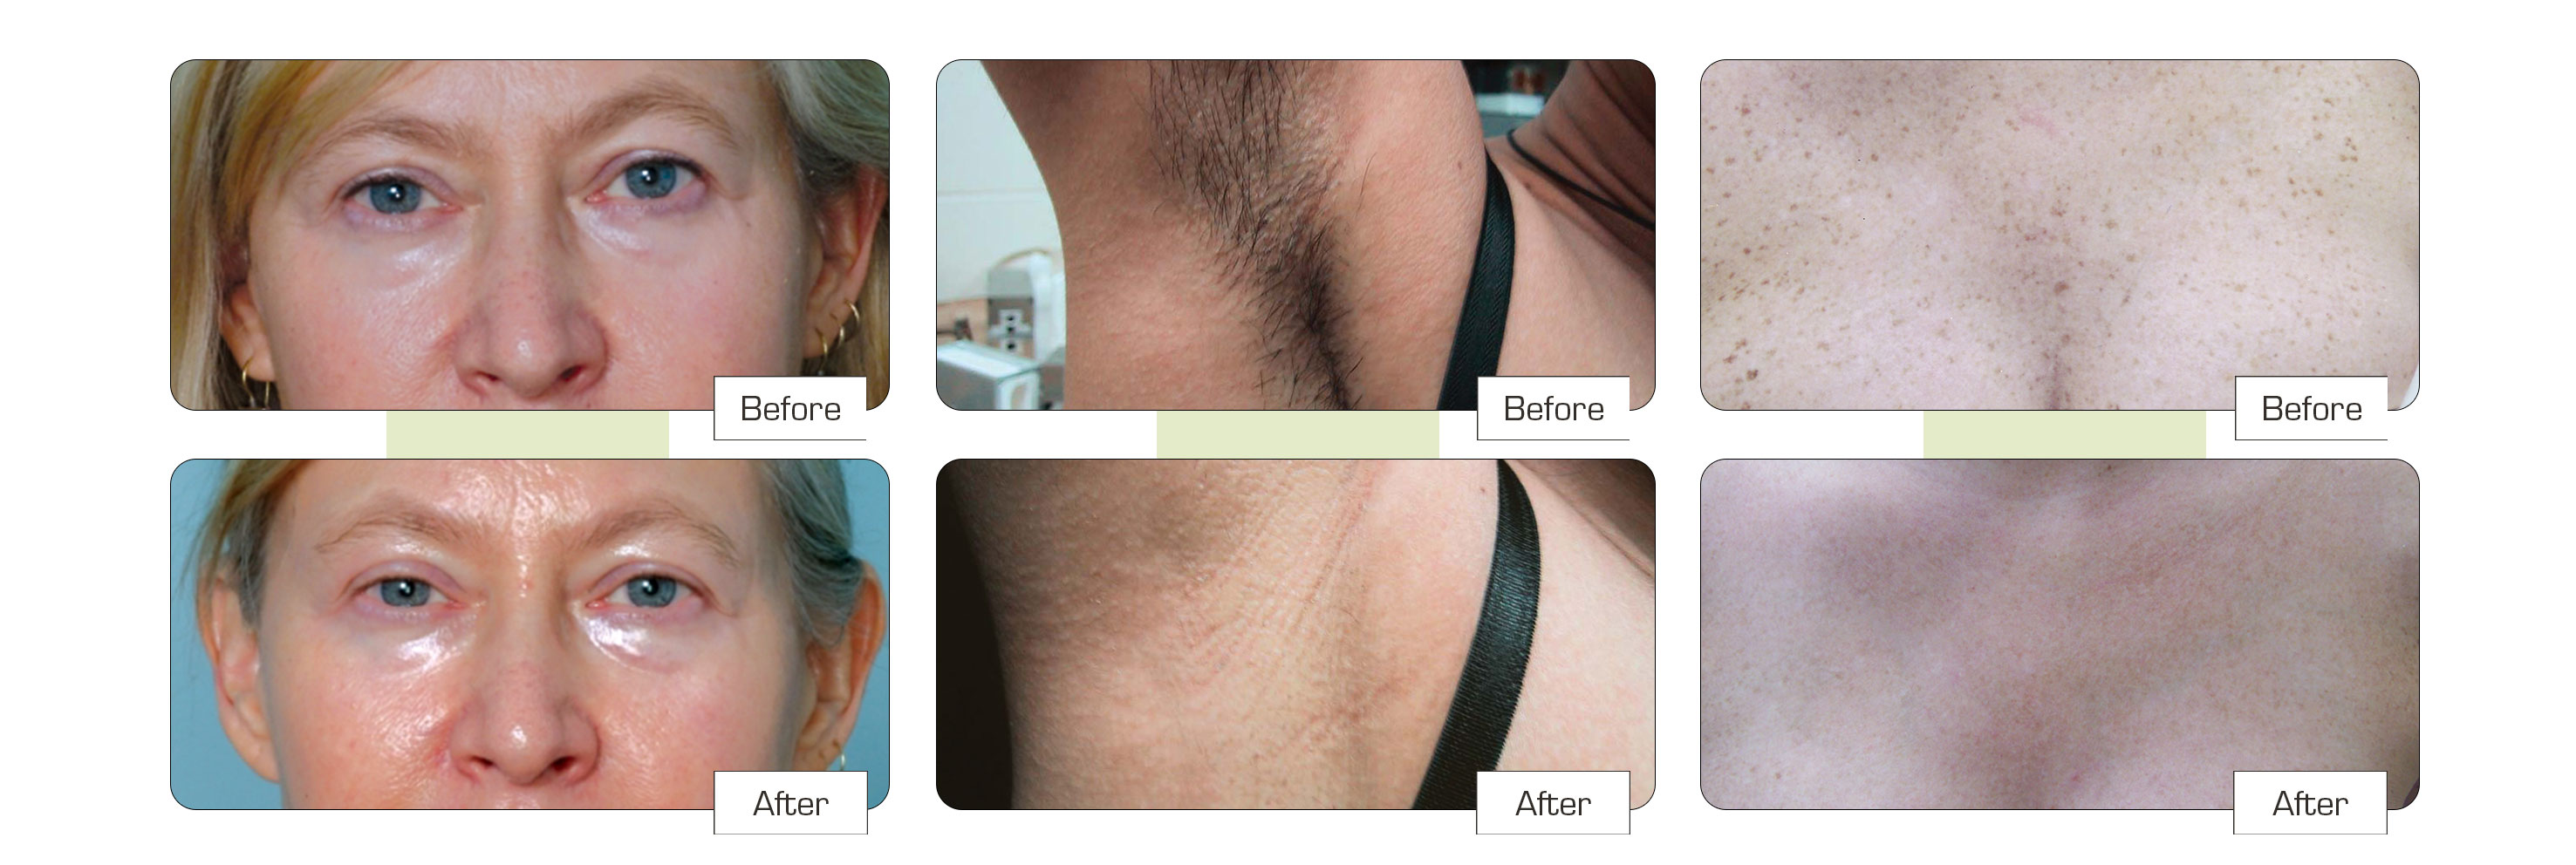 Laser hair removal Colchester before and after images